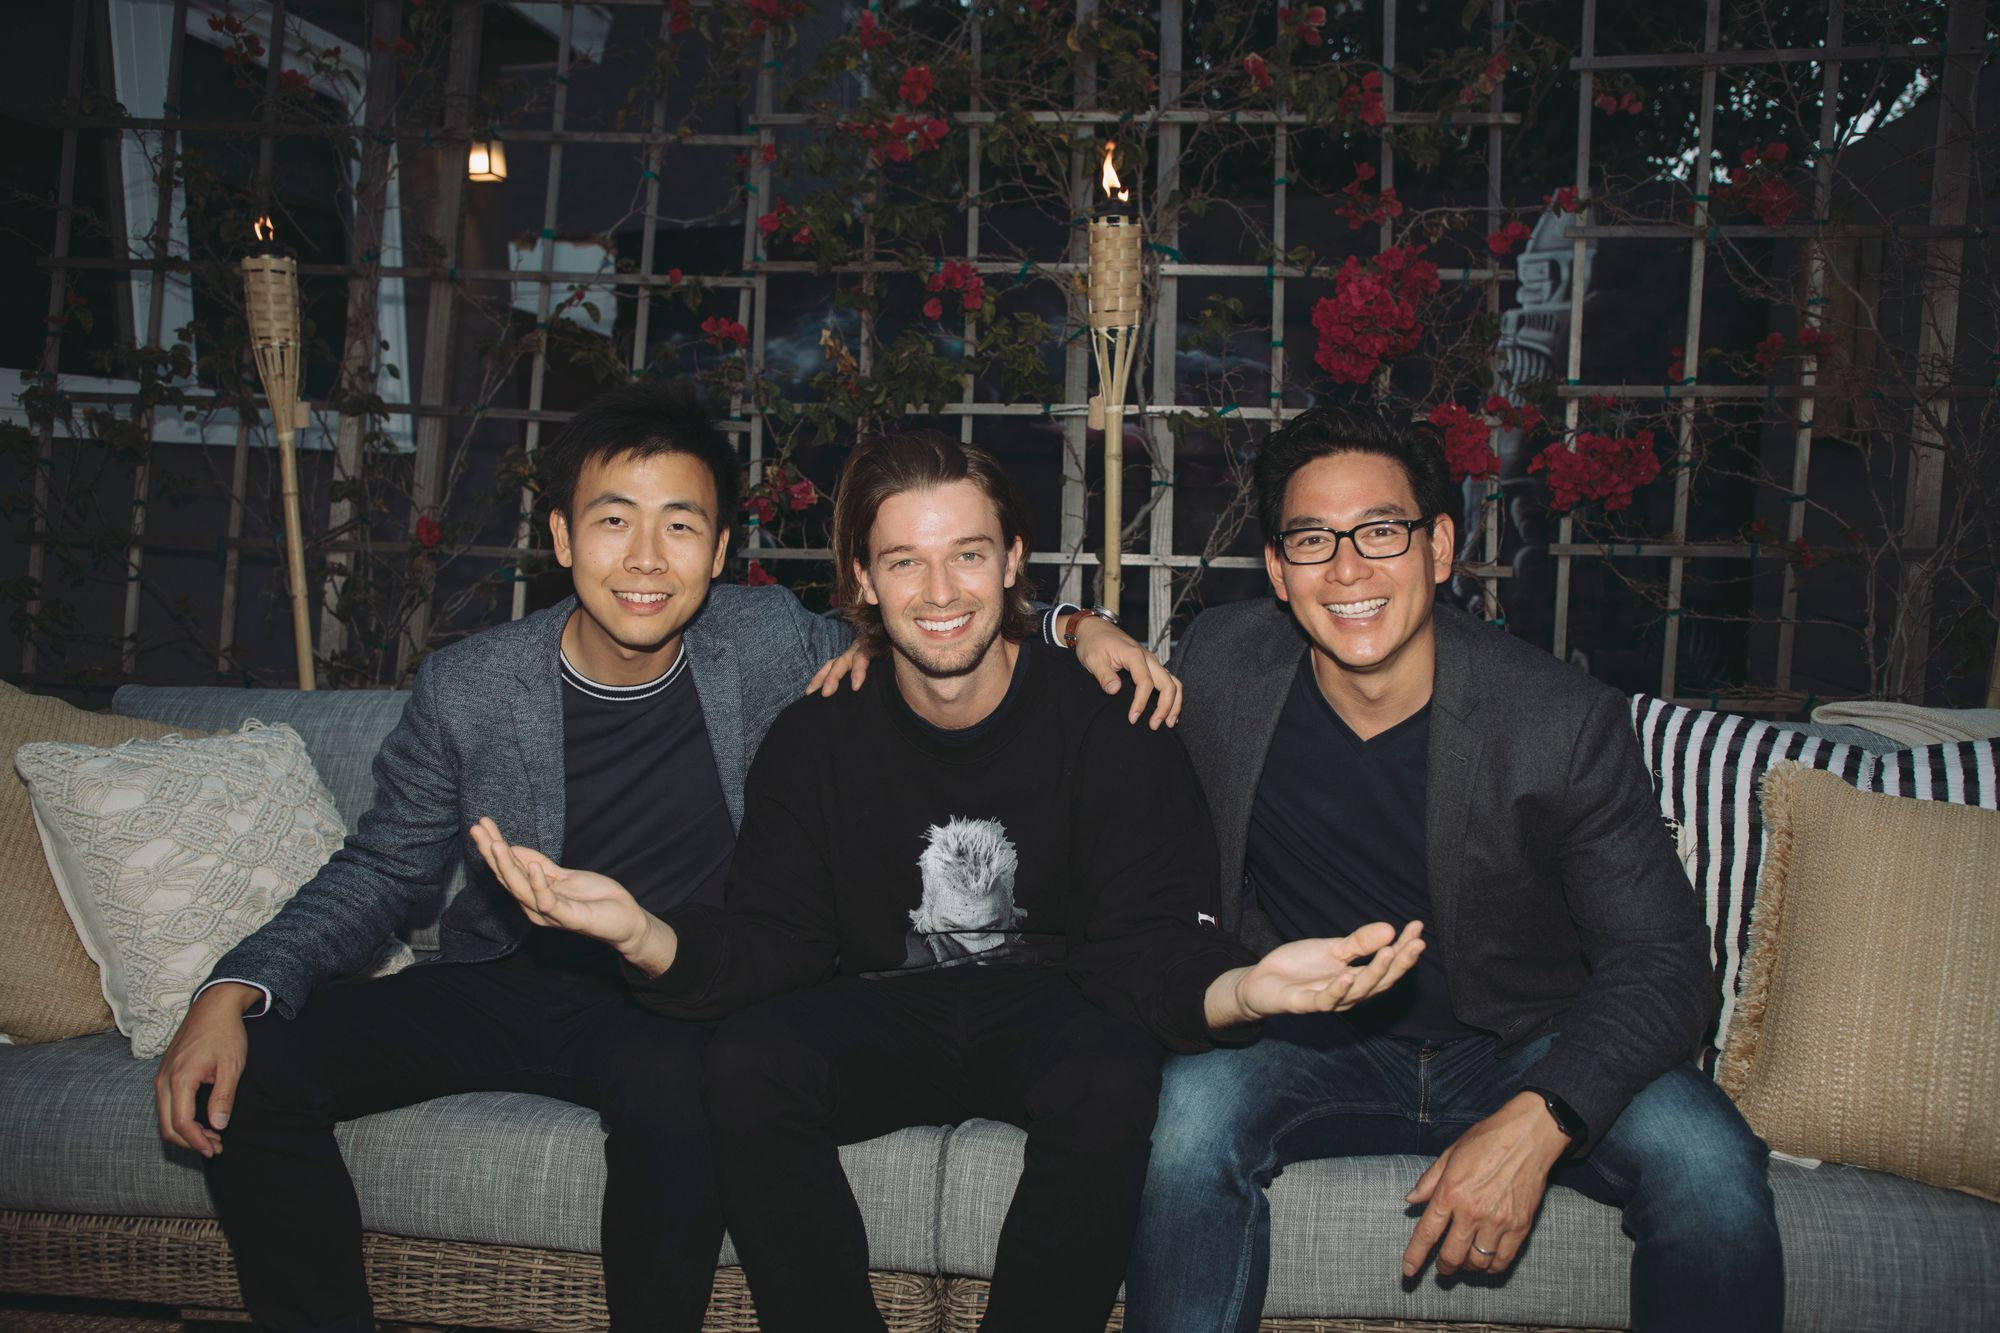 A Magical Night with Outer at the Venice Treehouse